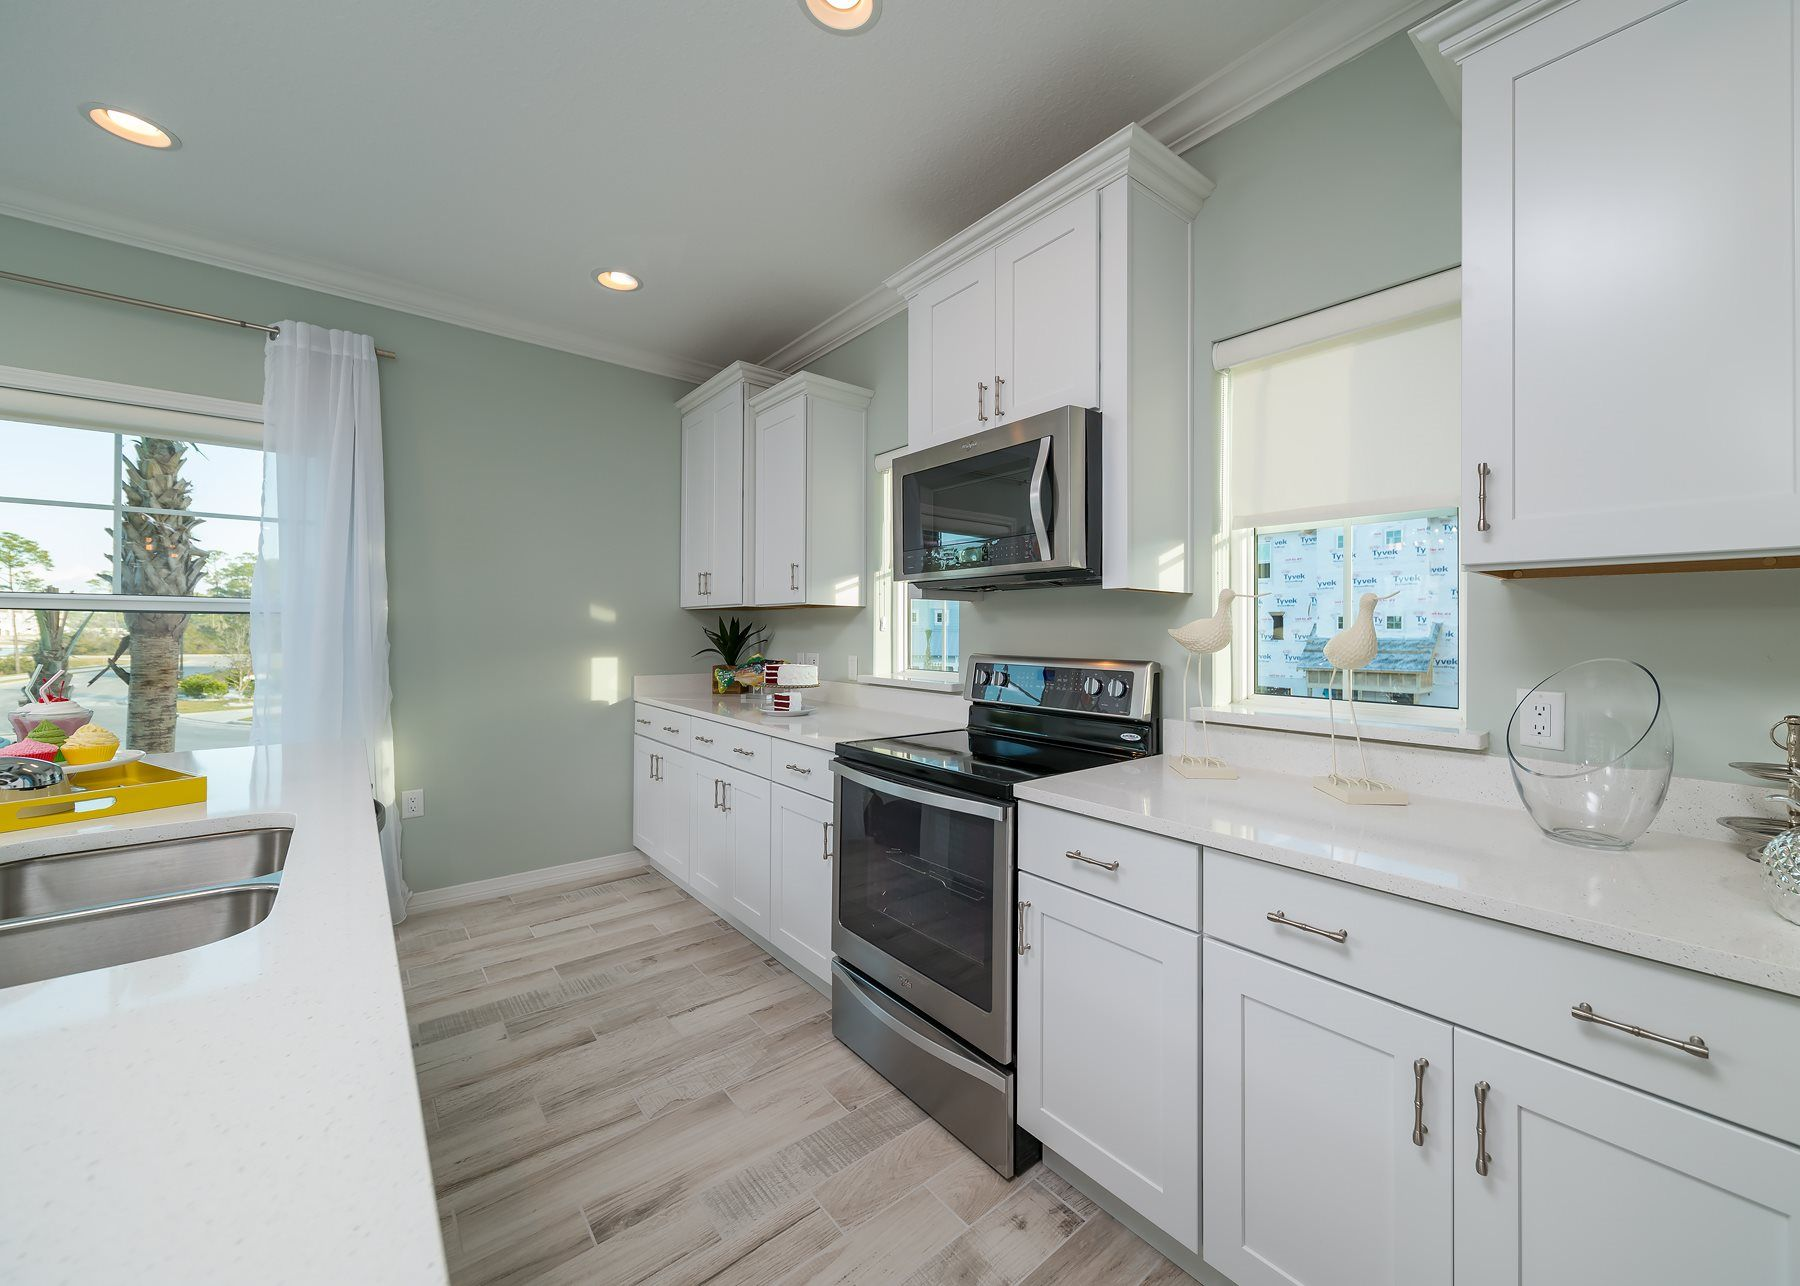 Kitchen featured in the 2BR Townhome By Lennar in Pensacola, FL